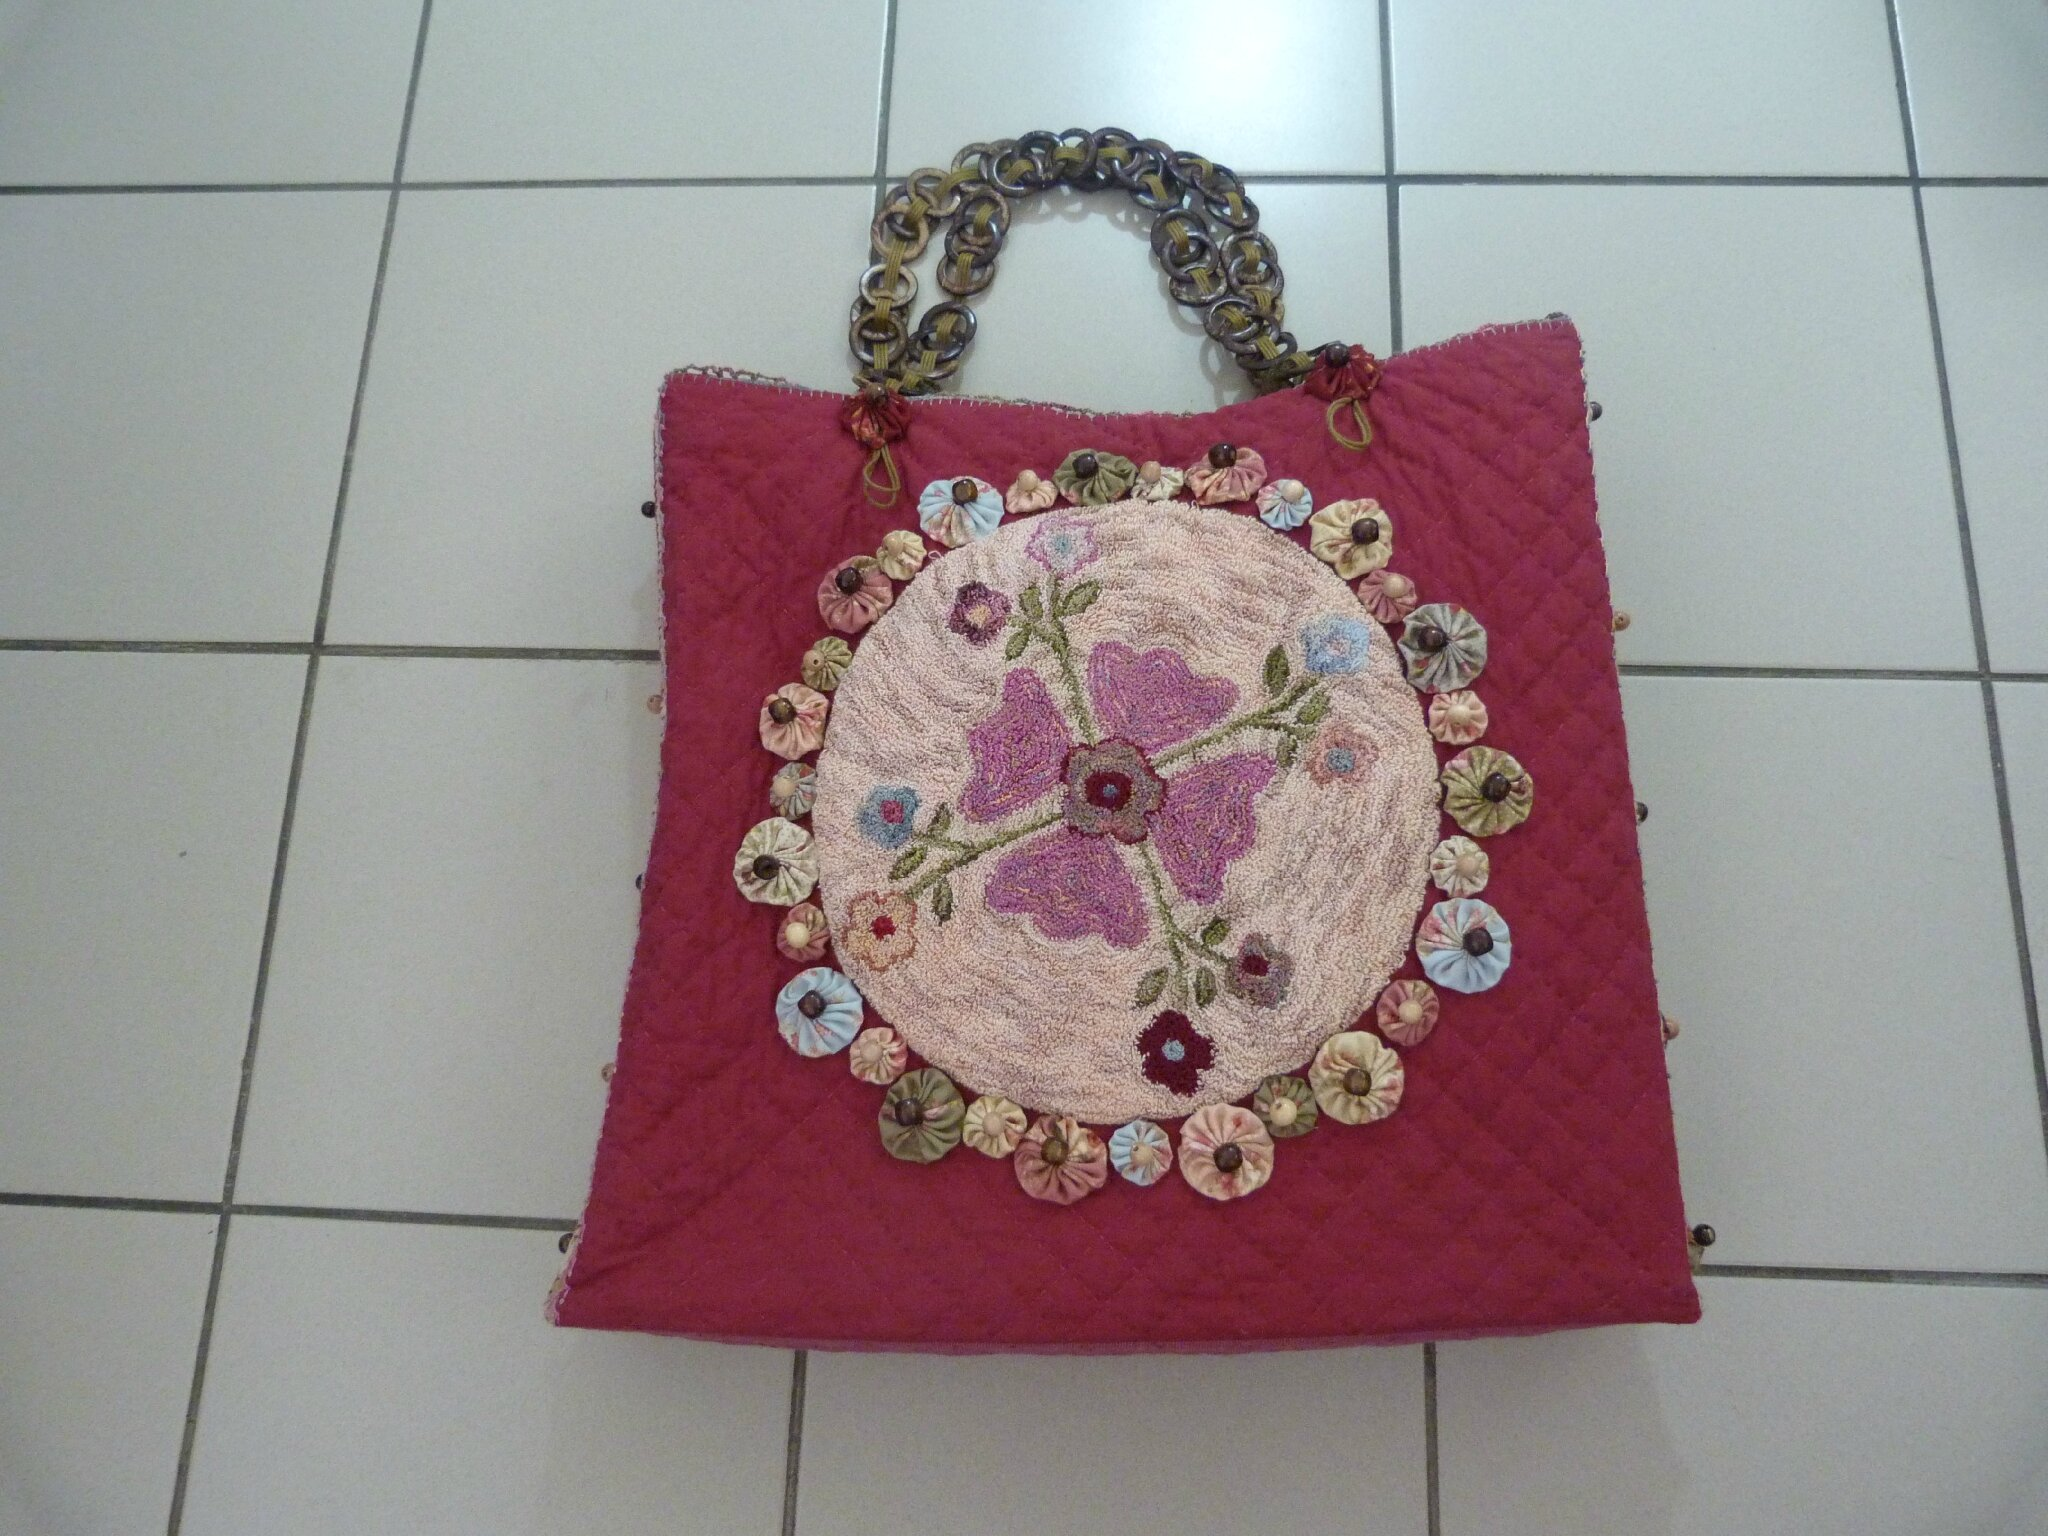 * My pretty bag *